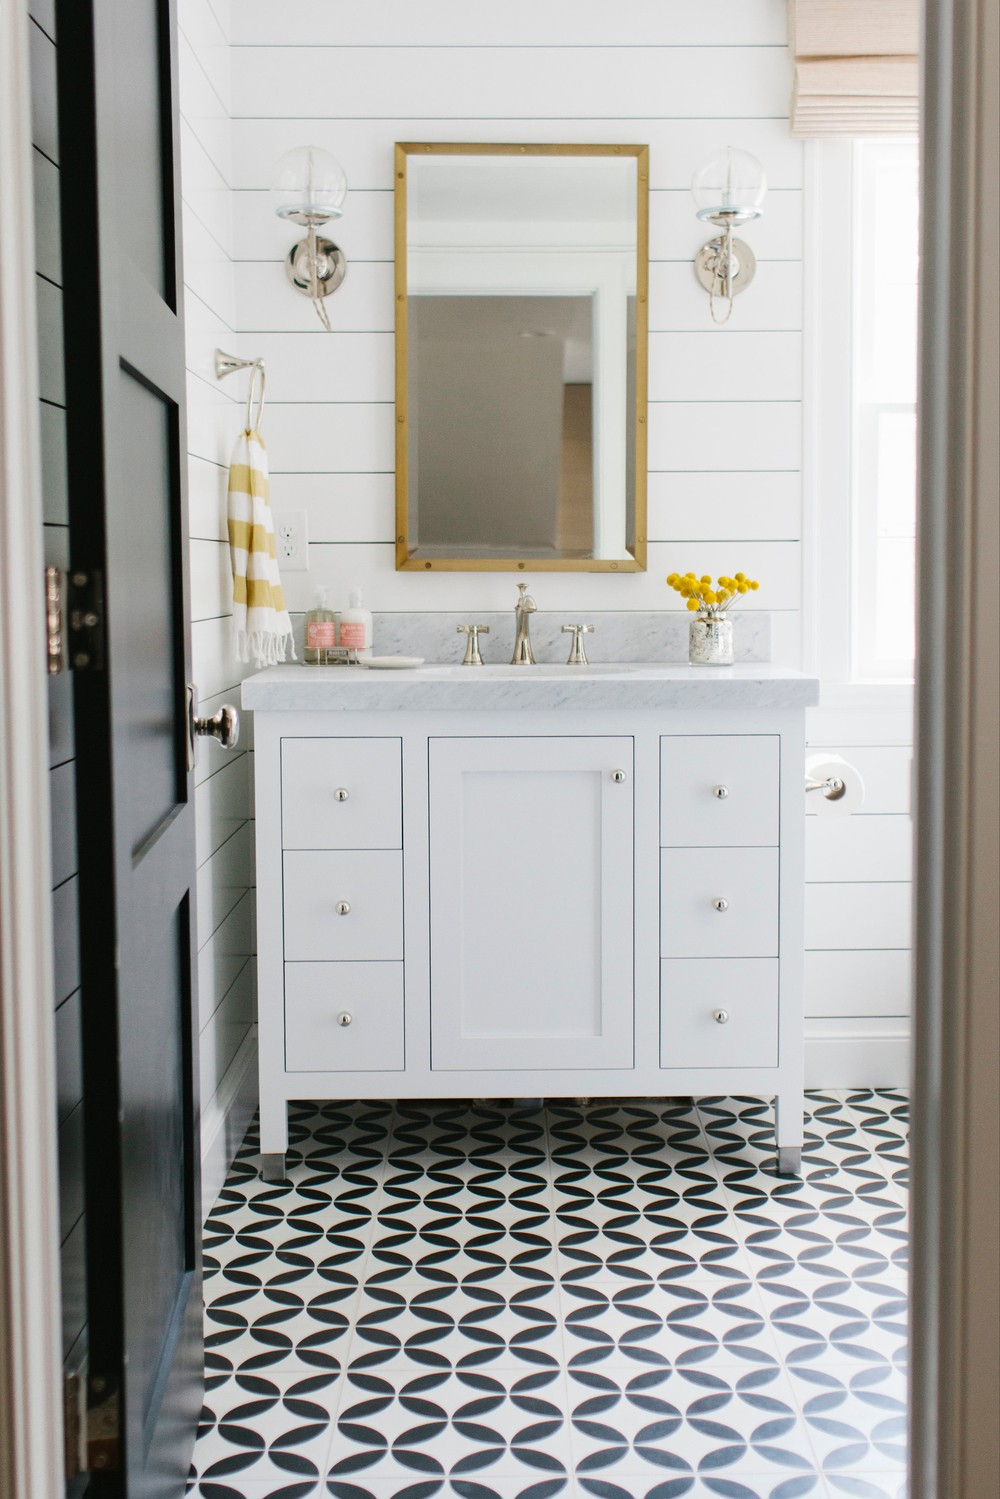 Cement+tile+and+Shiplap+Bathroom+by+Studio+McGee.jpg